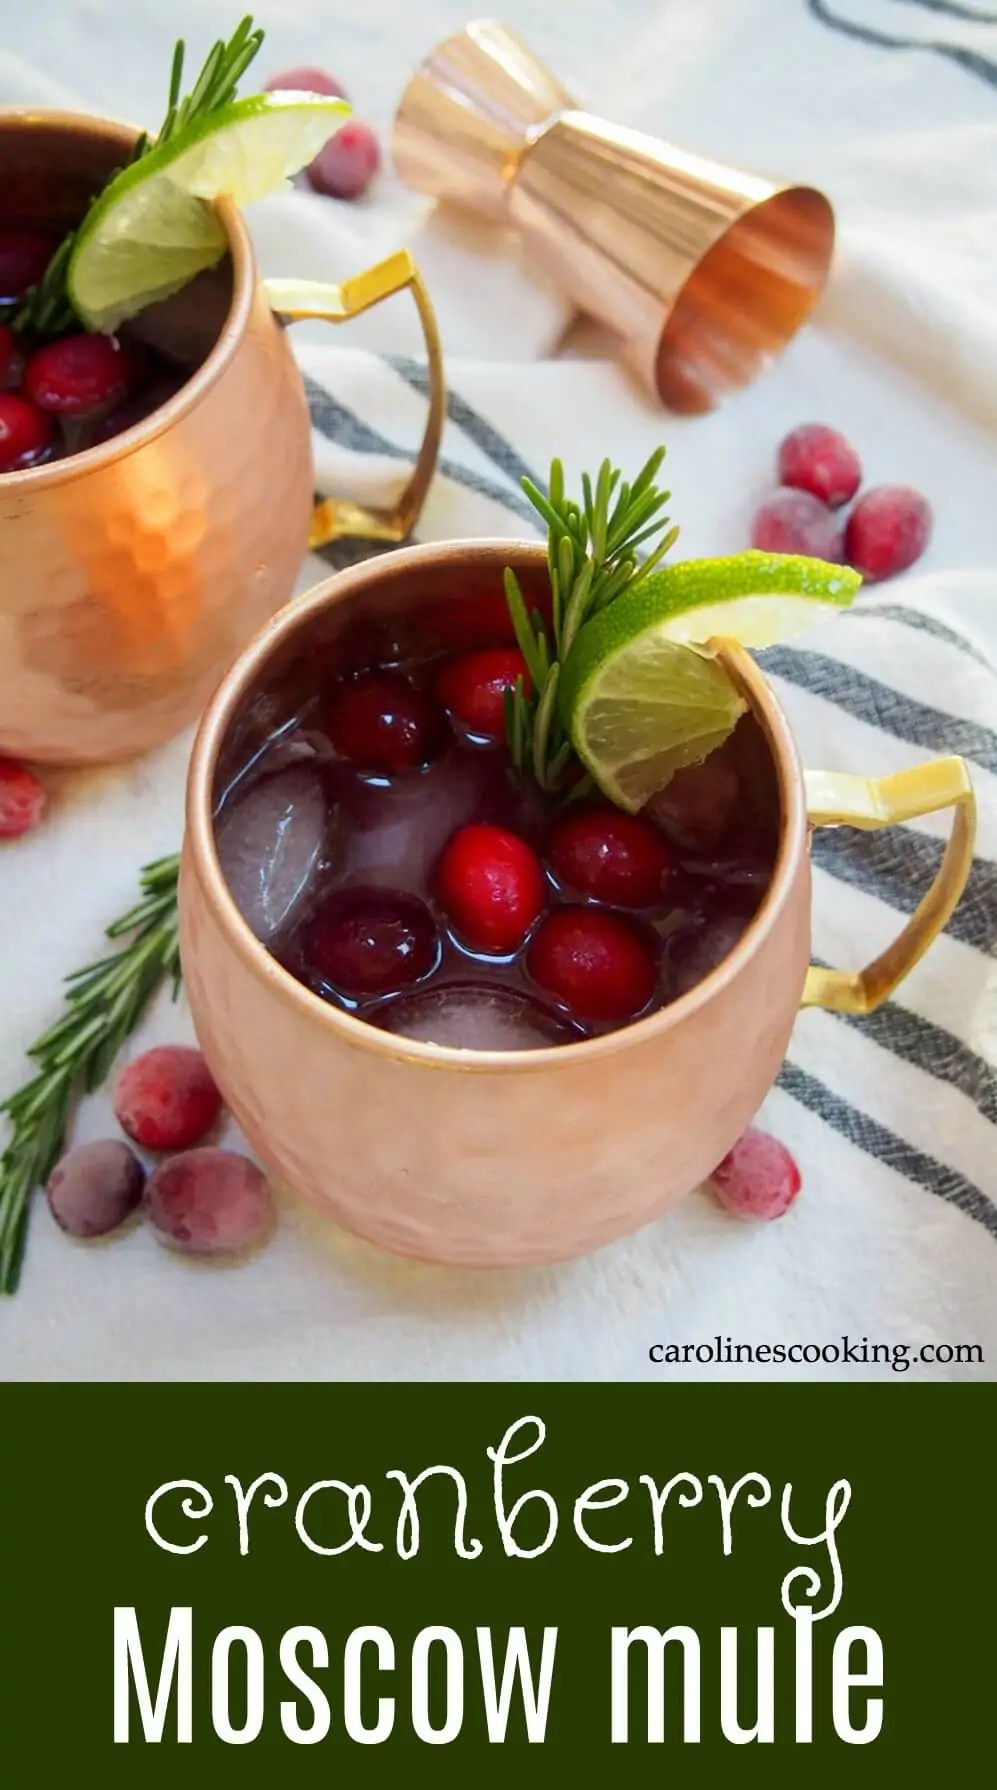 This cranberry Moscow mule is a simple seasonal twist on a classic cocktail, that can also easily be made as a mocktail. Perfect for a festive party! #cranberryweek #cranberry #cocktail #vodka